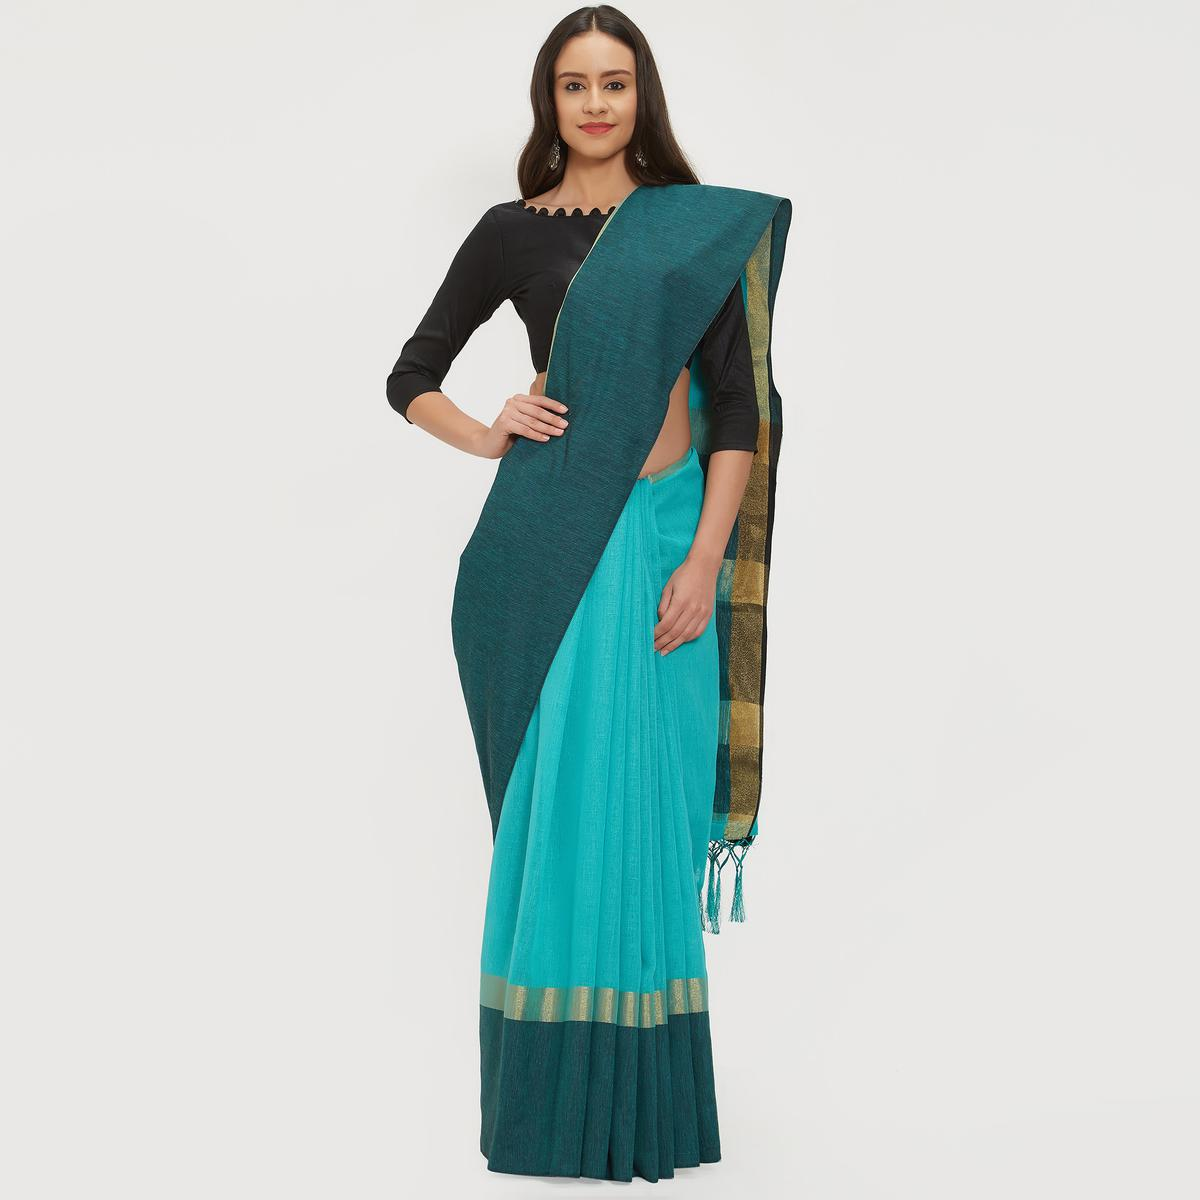 Integral Sky Blue Colored Casual Wear Linen Saree With 2 Blouse Pieces